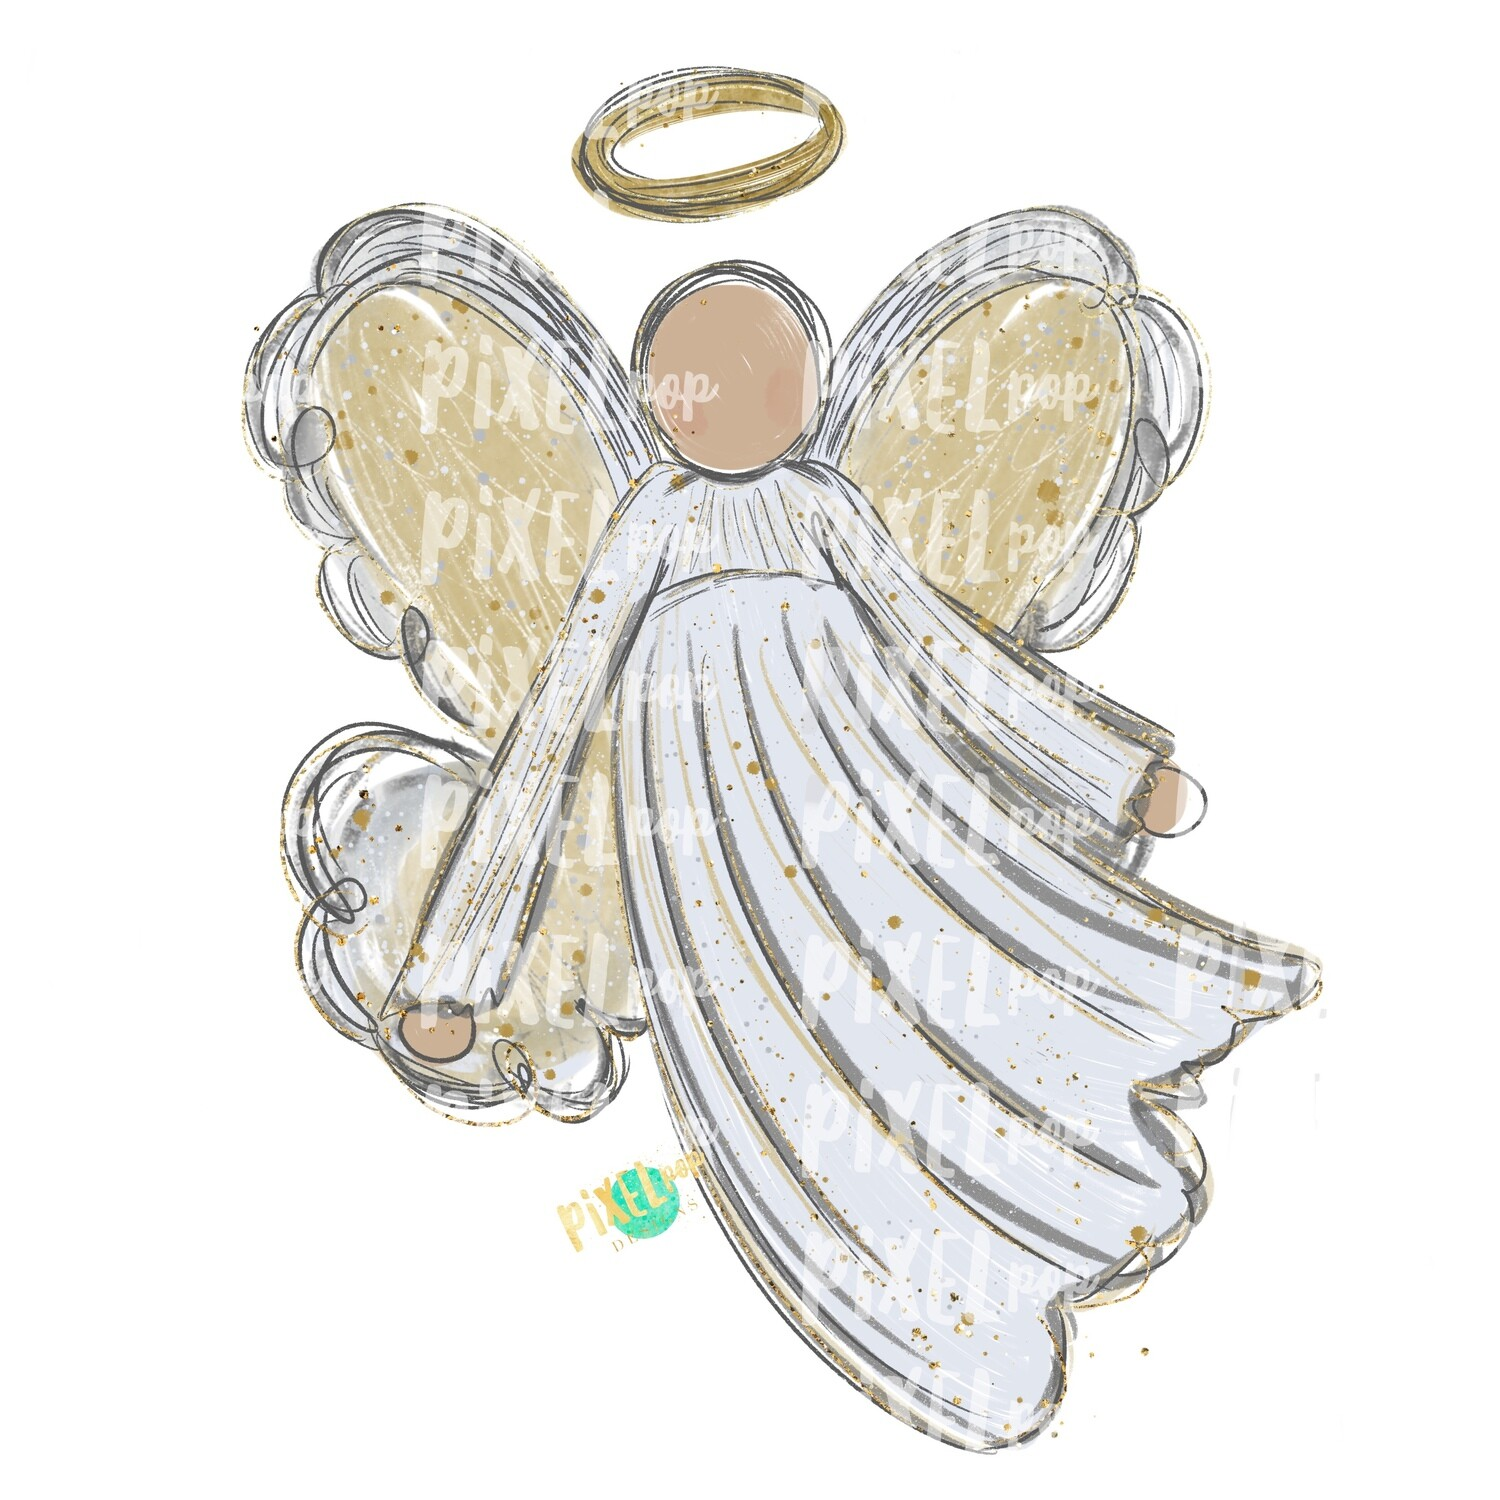 Light Skin Angel Watercolor Digital Art Sublimation PNG | Ornament Design | Hand Painted | Digital Download | Printable | Christmas | Loss